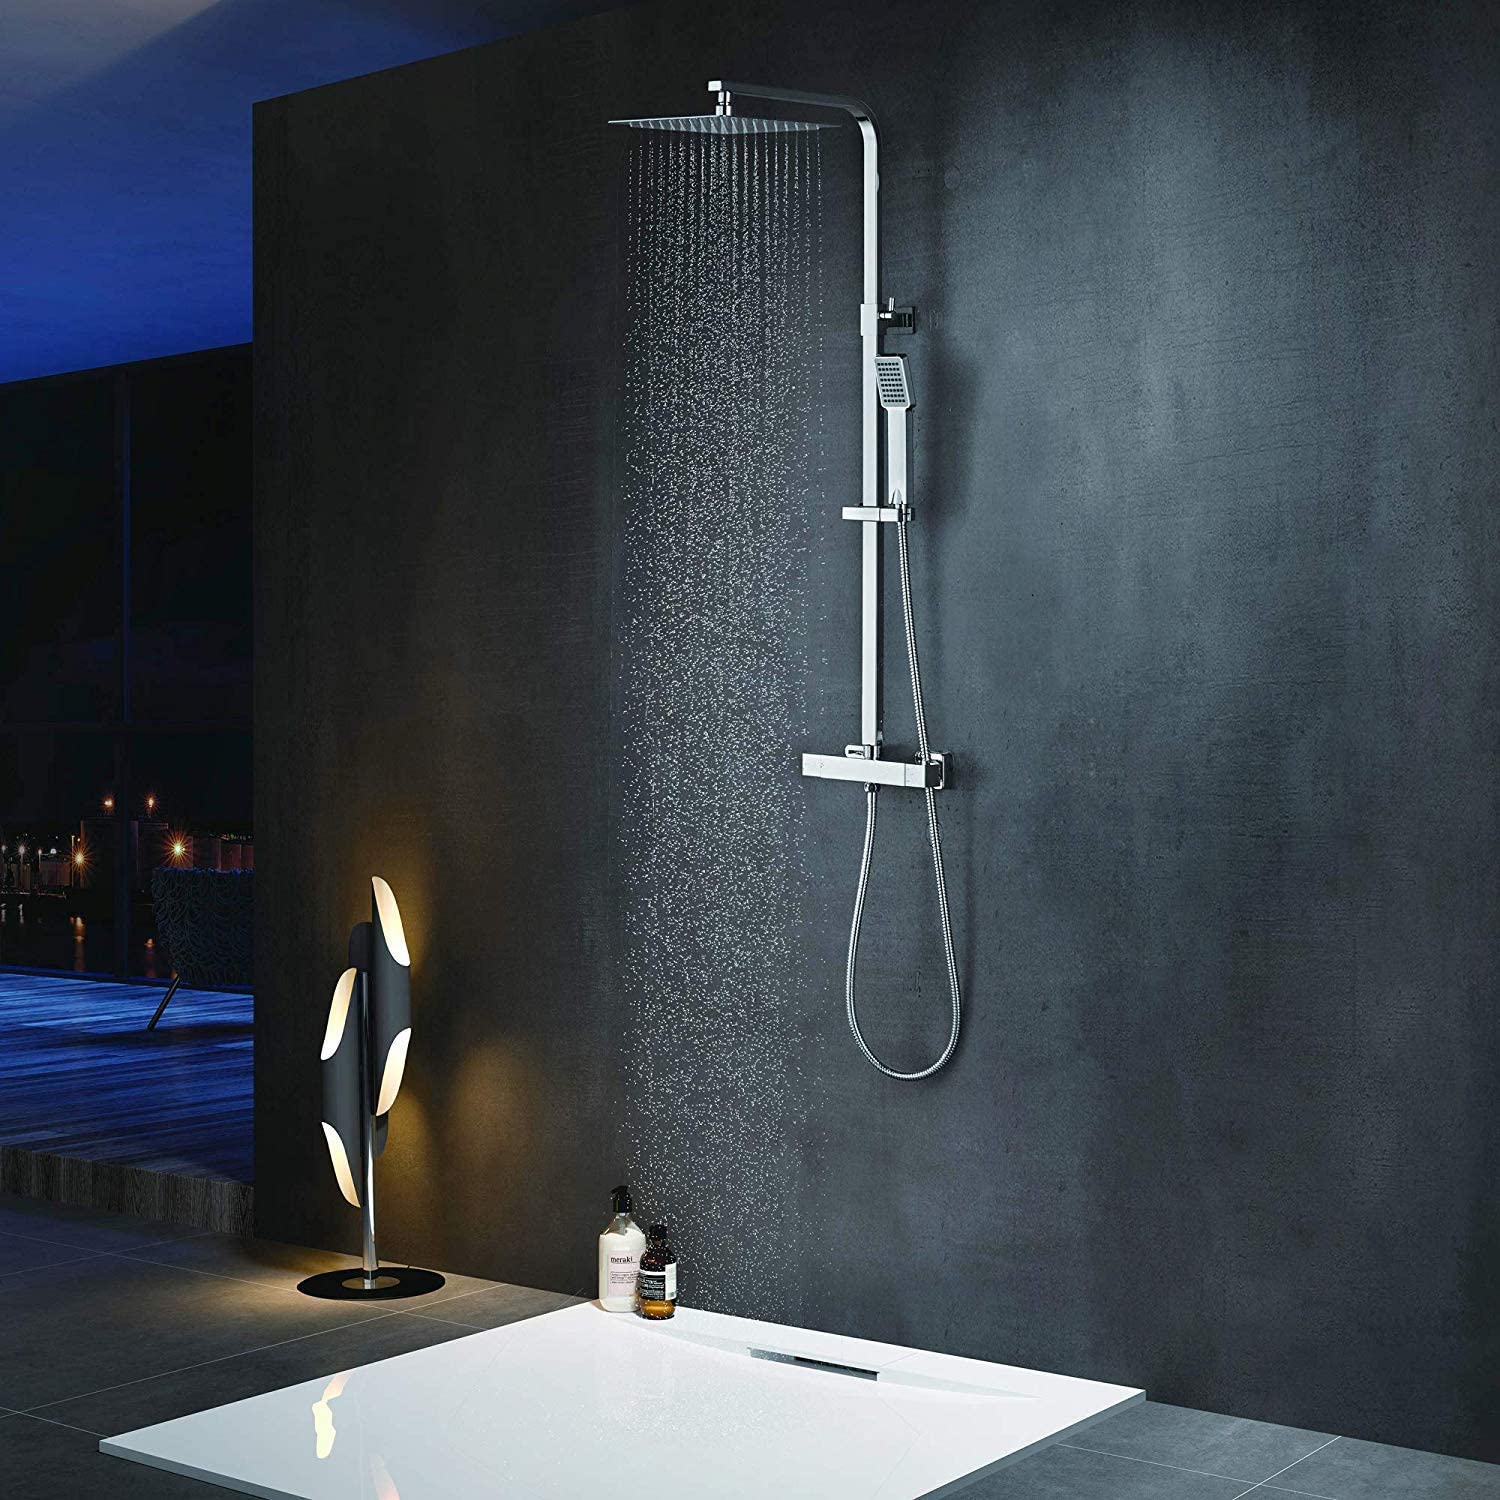 Elbe Mixer Shower Square Thermostatic Shower Column Shower set with square head shower, Chrome _RNS-C06